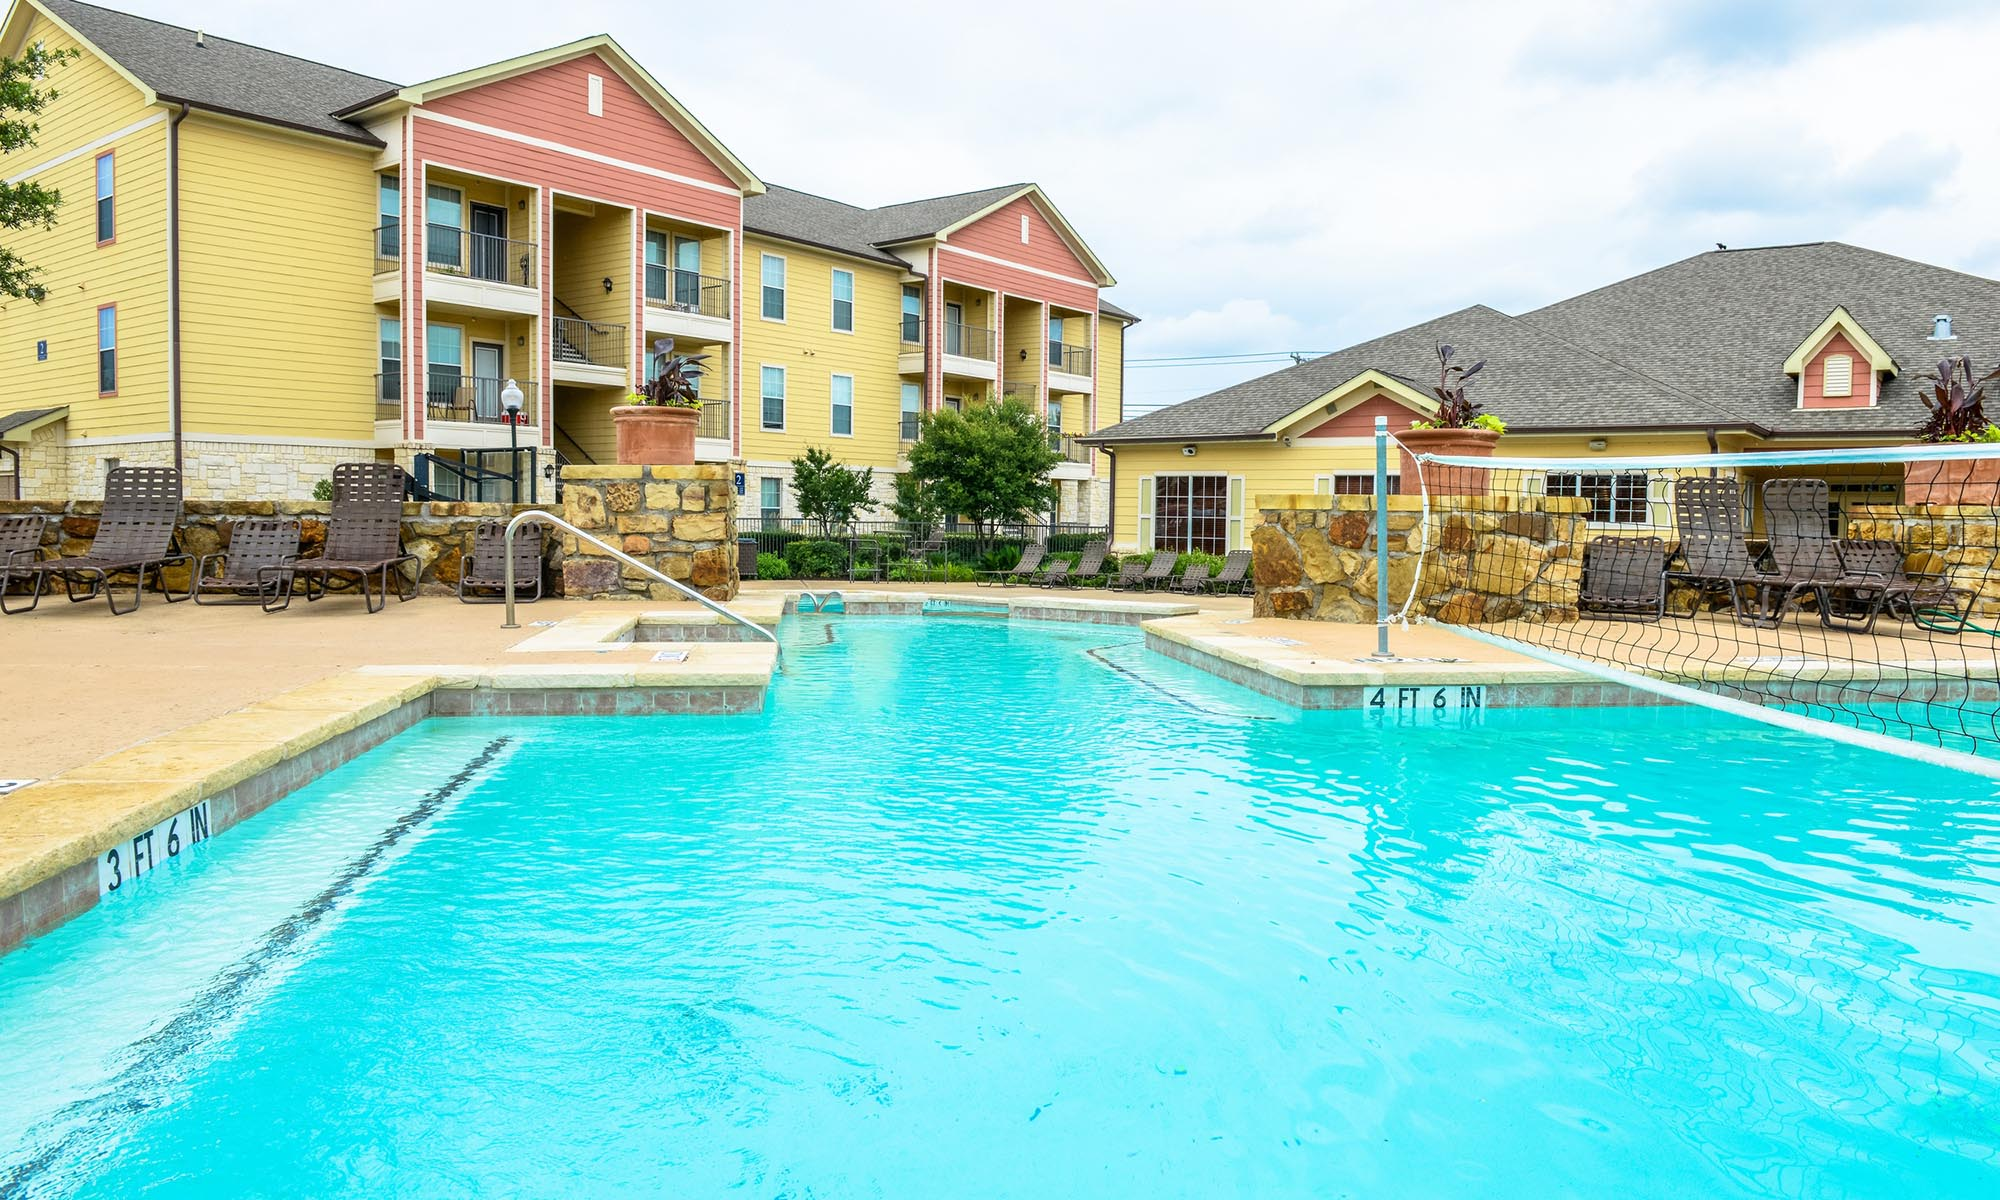 Apartments for rent in Killeen have a wonderful pool